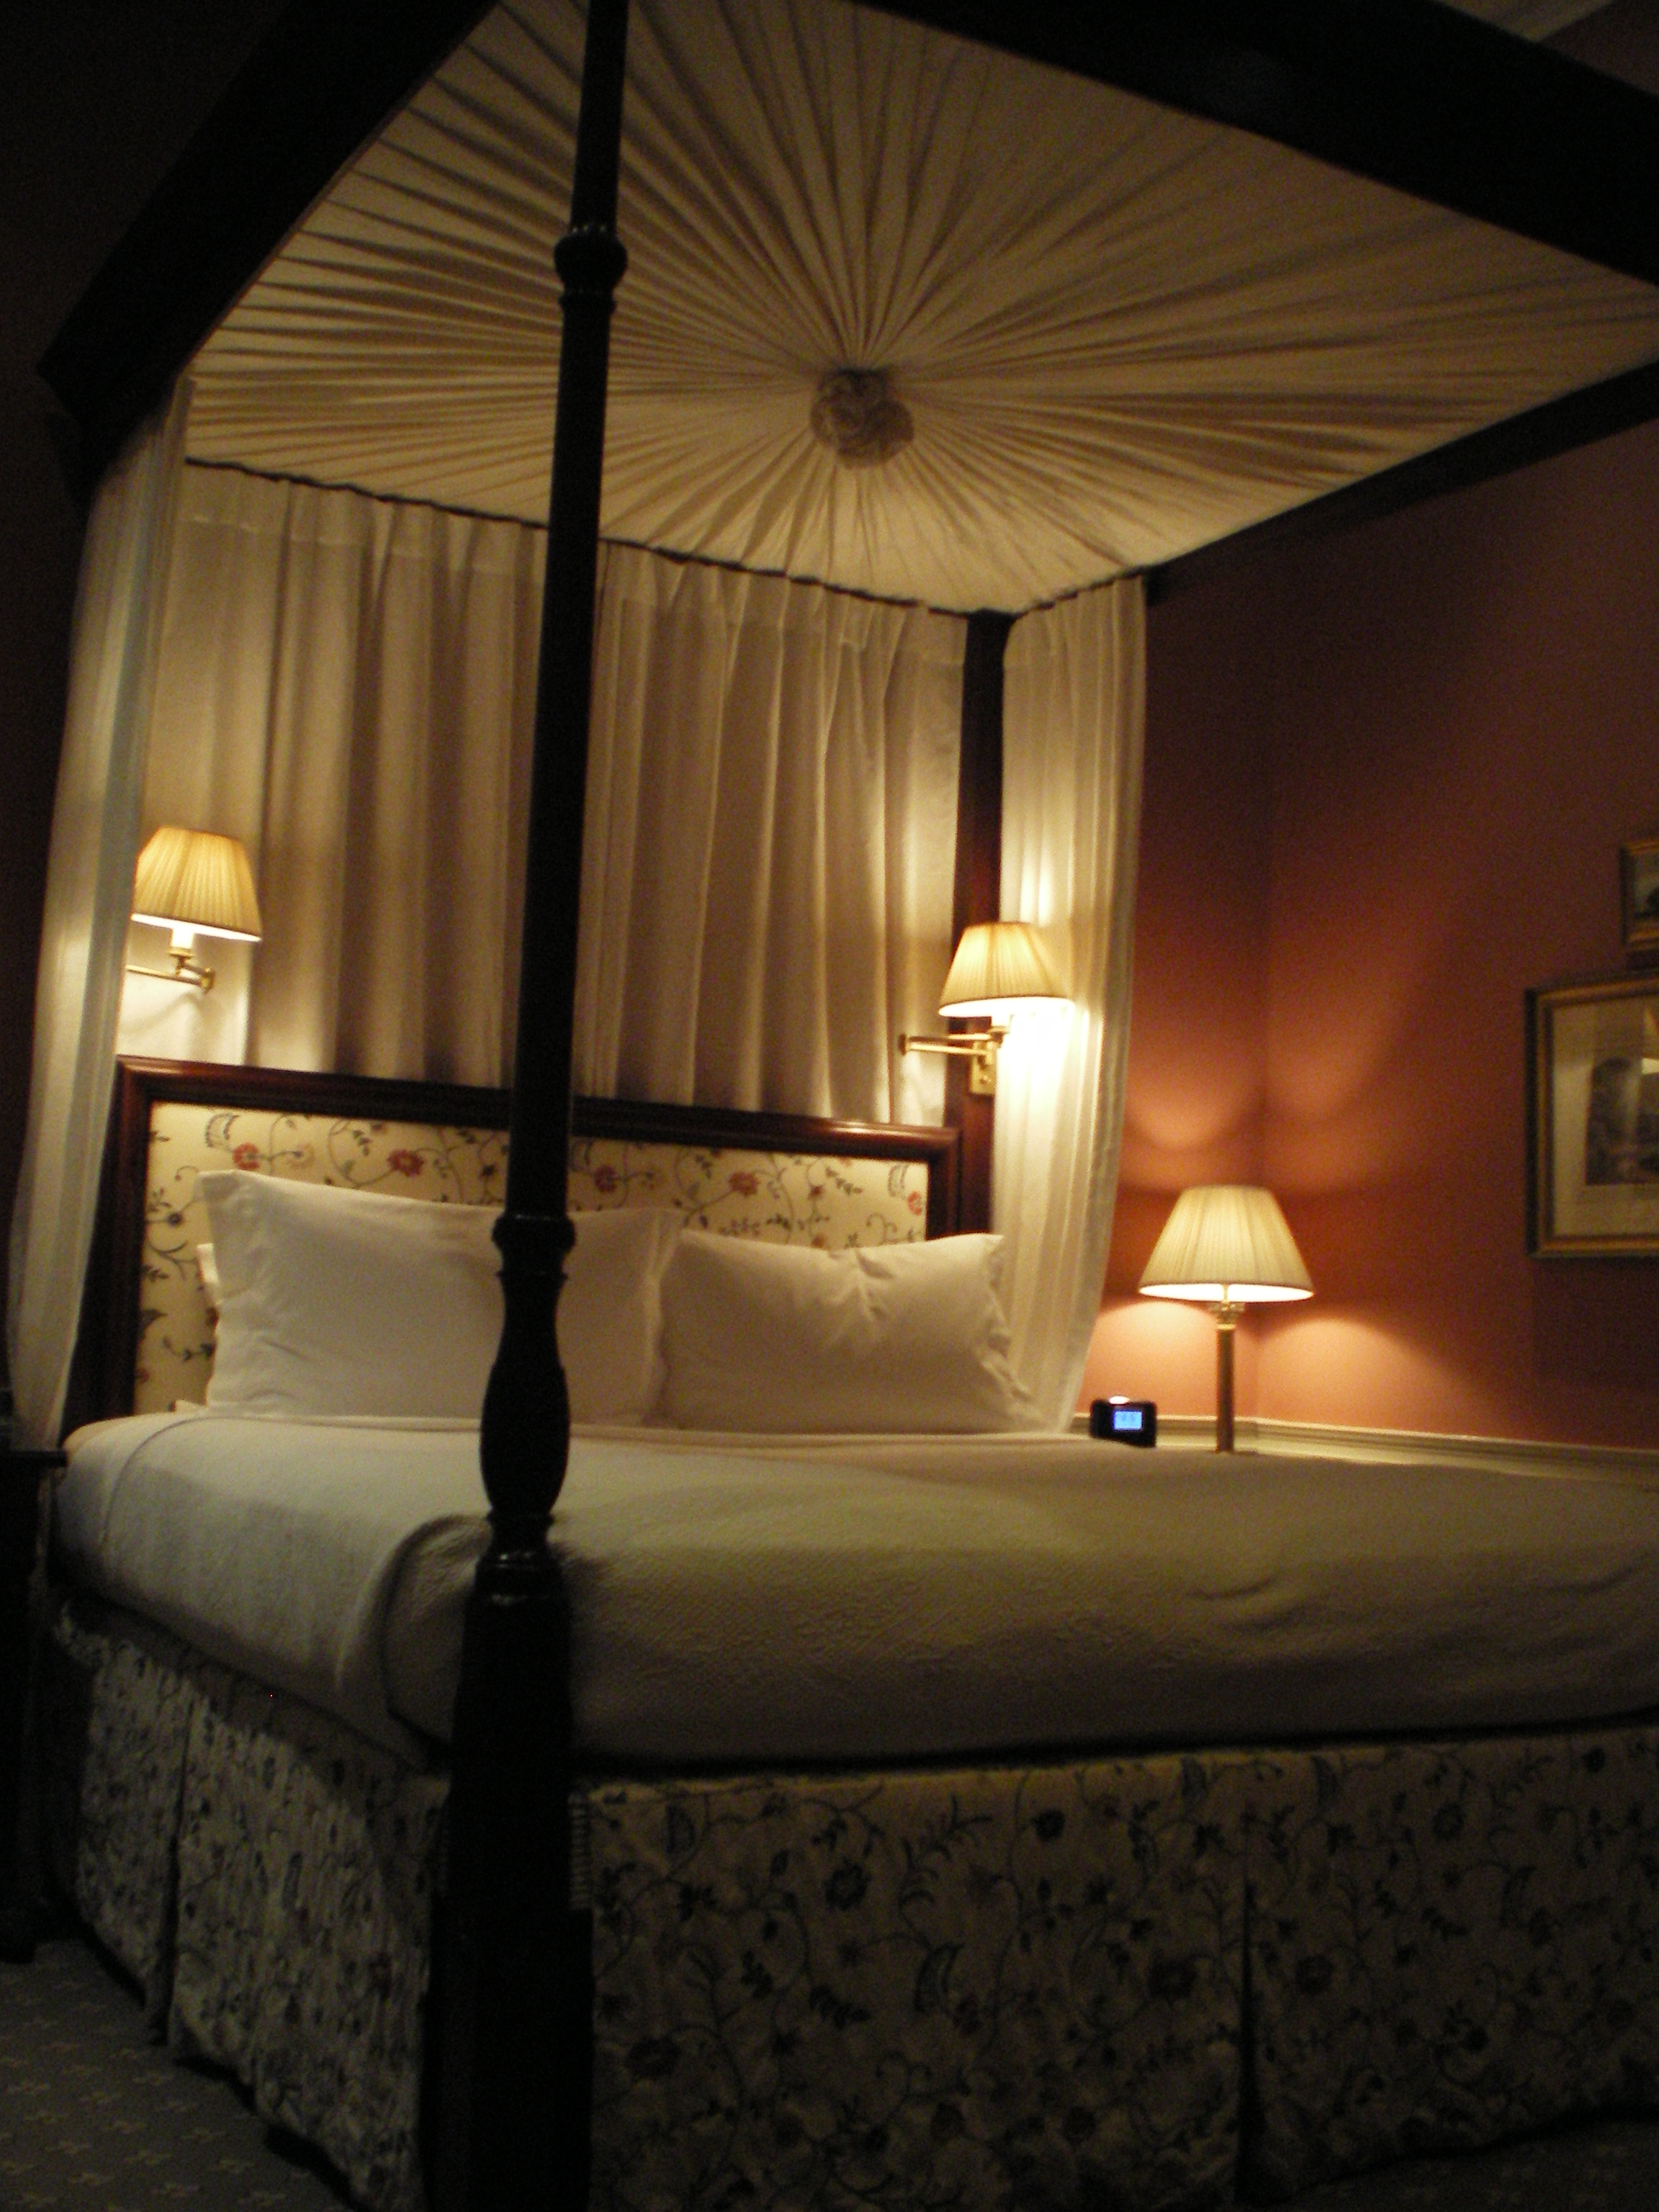 ... Bed With Curtains , Canopy Bed , Four Poster Bed With Canopy